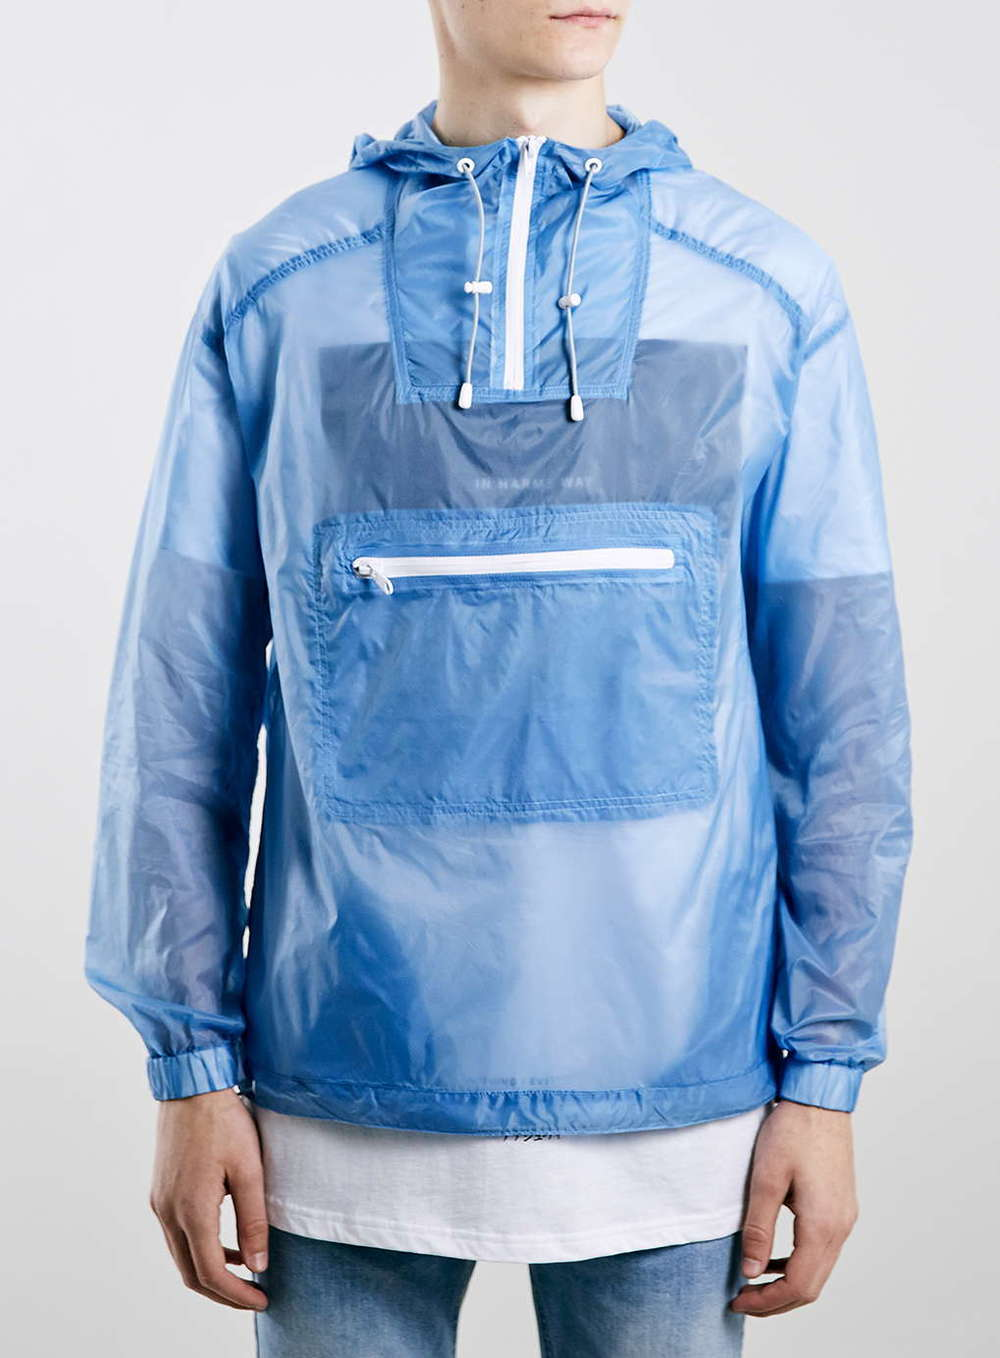 Topman Blue Packaway Trek Jacket    $65.00